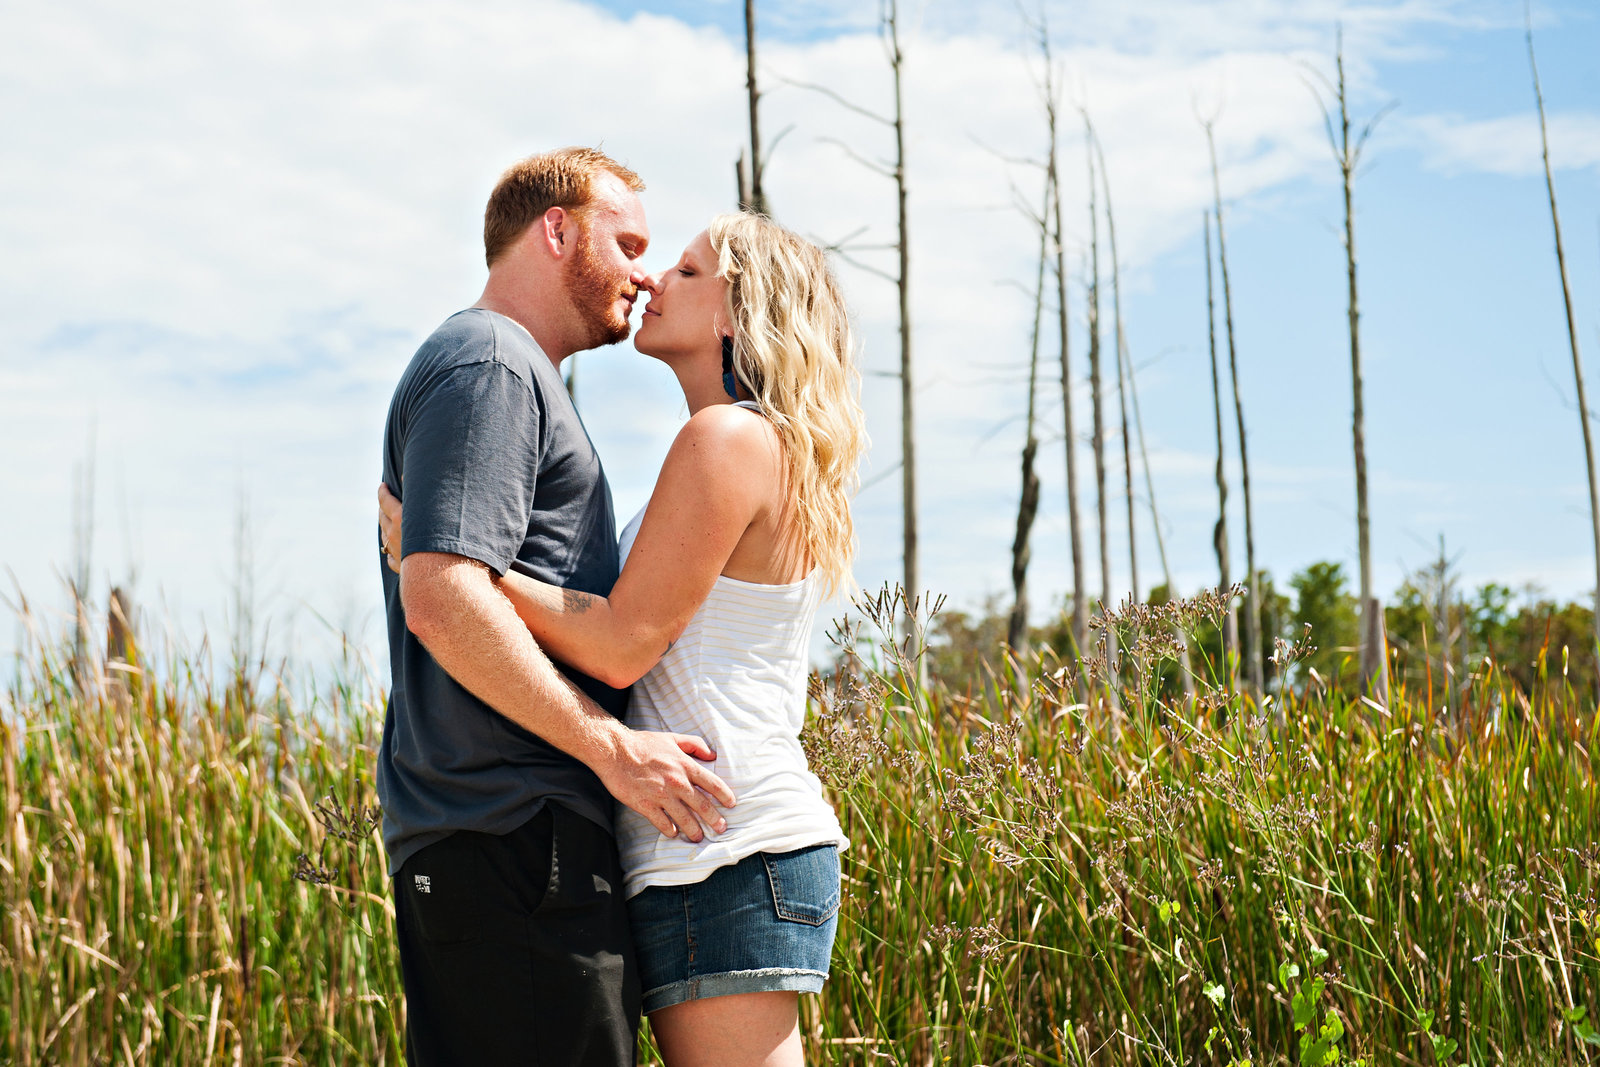 A couple kiss in the north carolina marsh land.